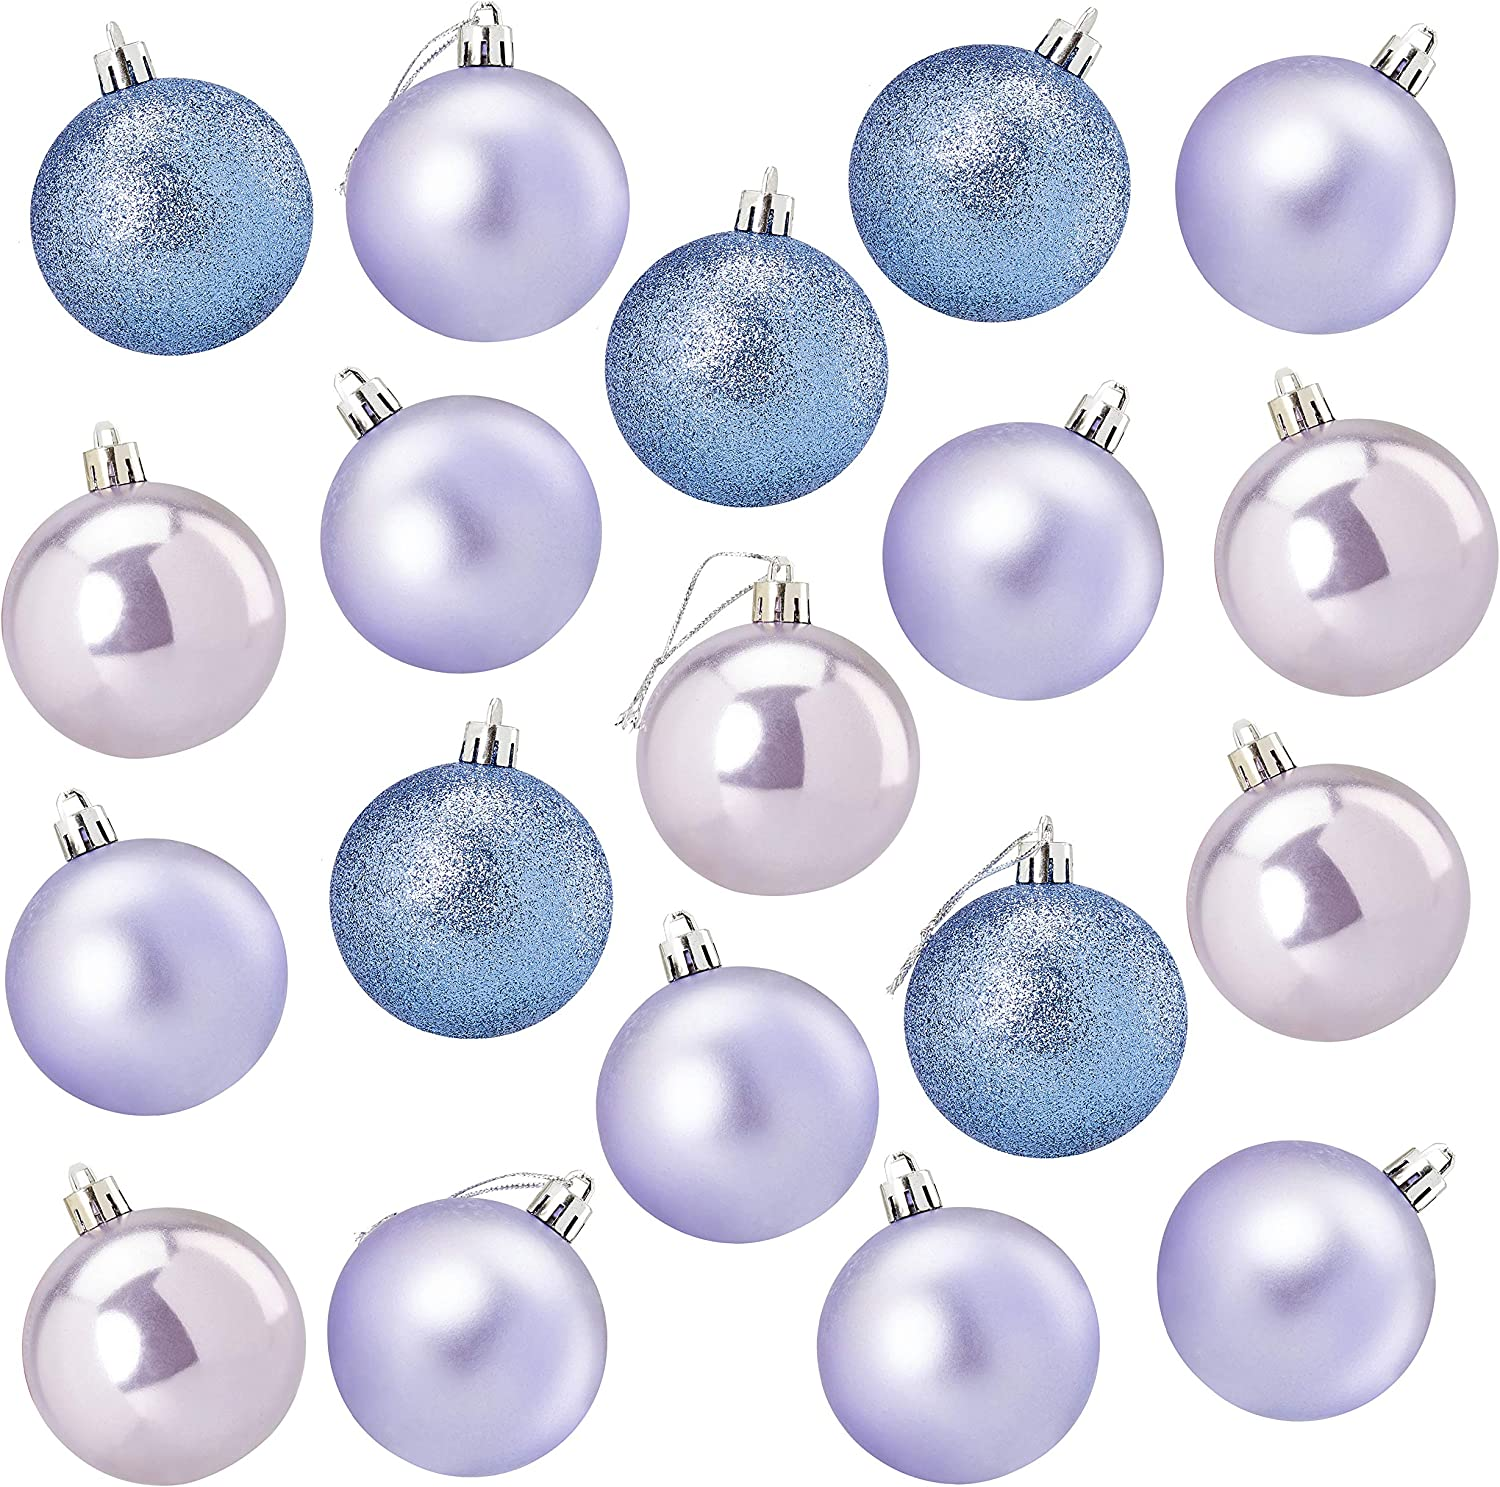 Purple And Blue Christmas Tree Decorations  from images-na.ssl-images-amazon.com